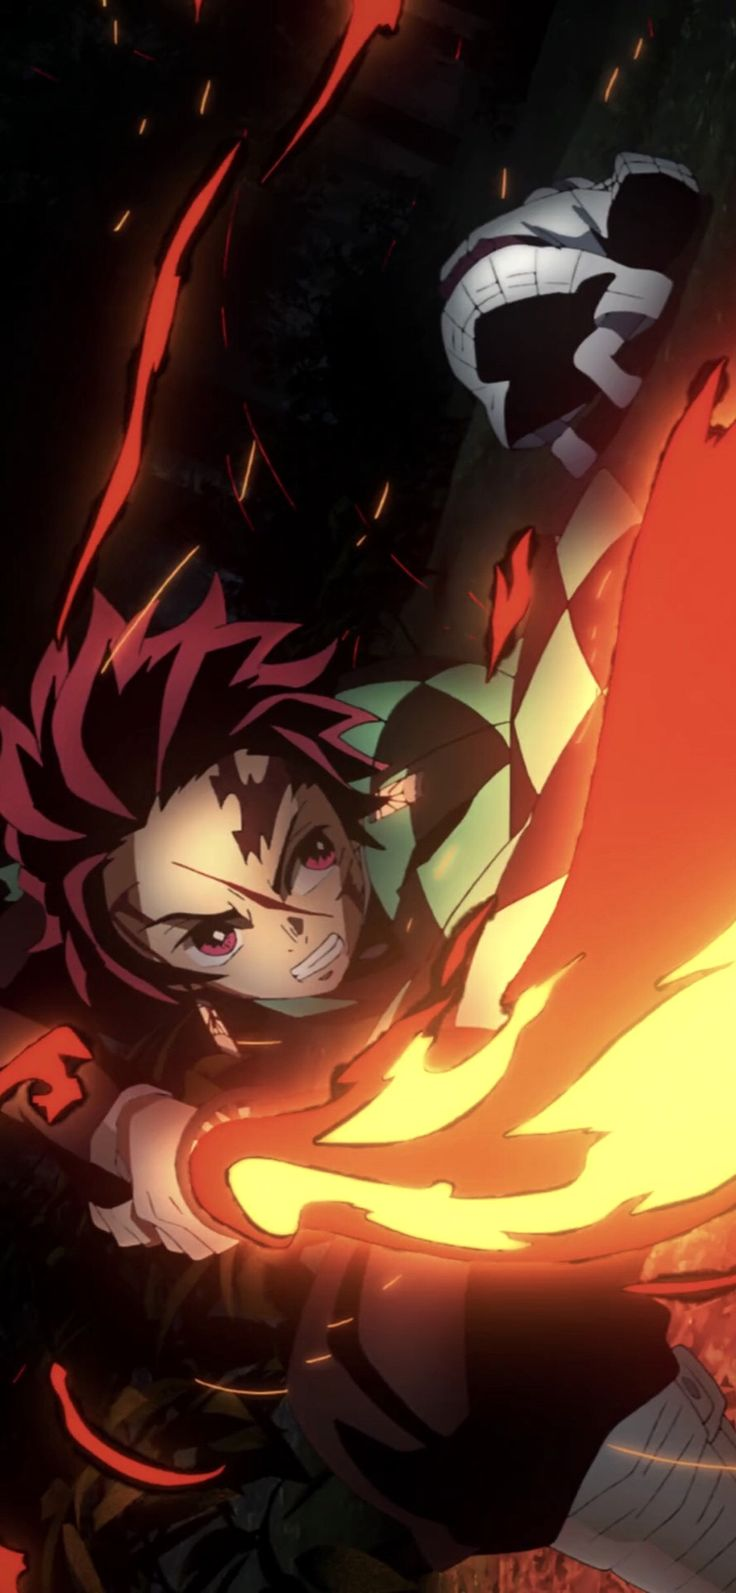 Best of demon slayer wallpapers for mobile android